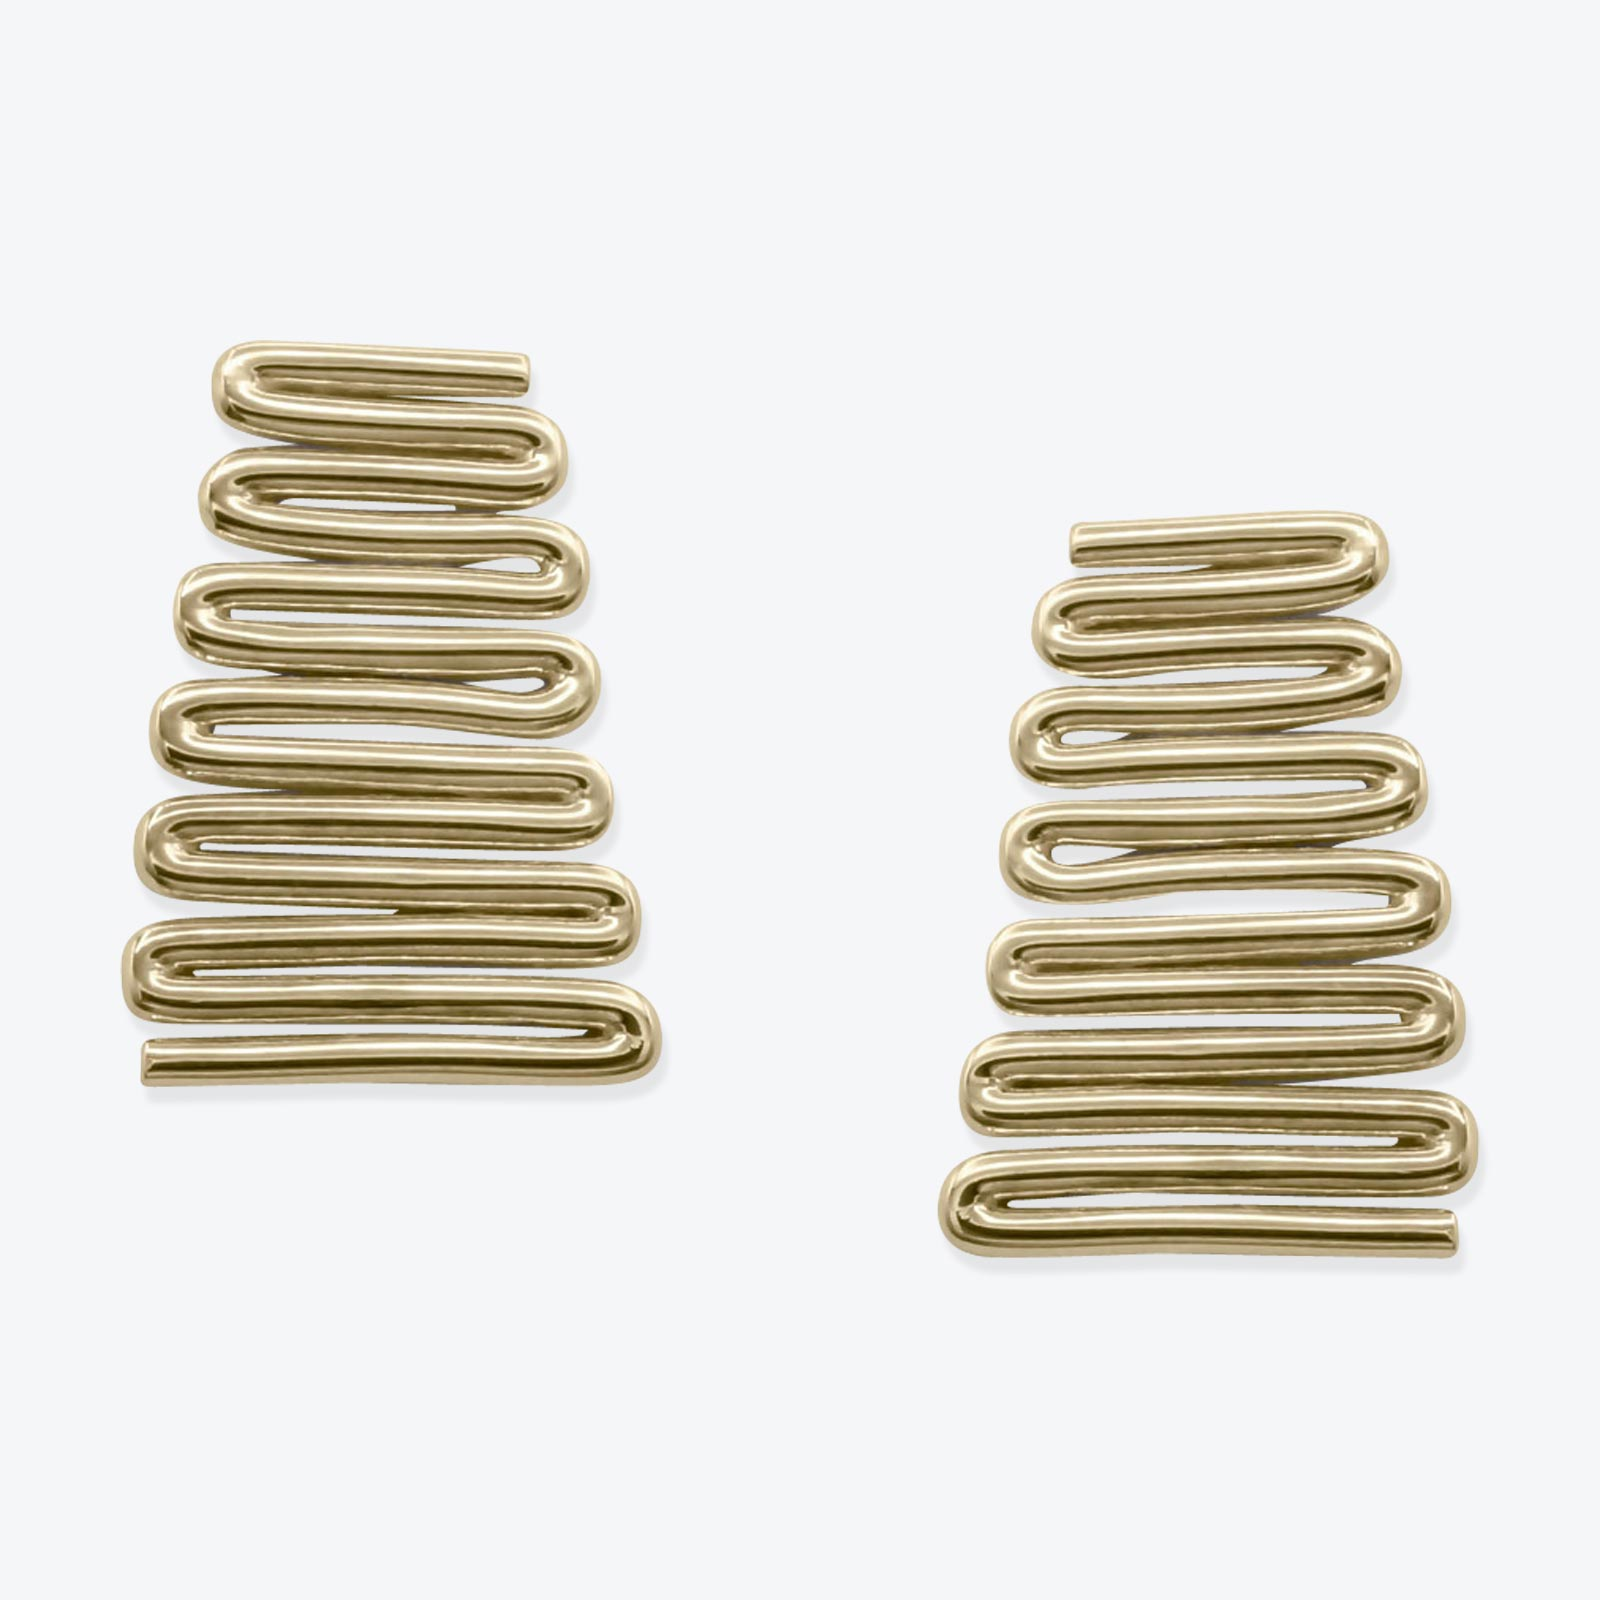 Zag Earrings In Sterling Silver 23.9k Gold Plated By Toyah Perry 01